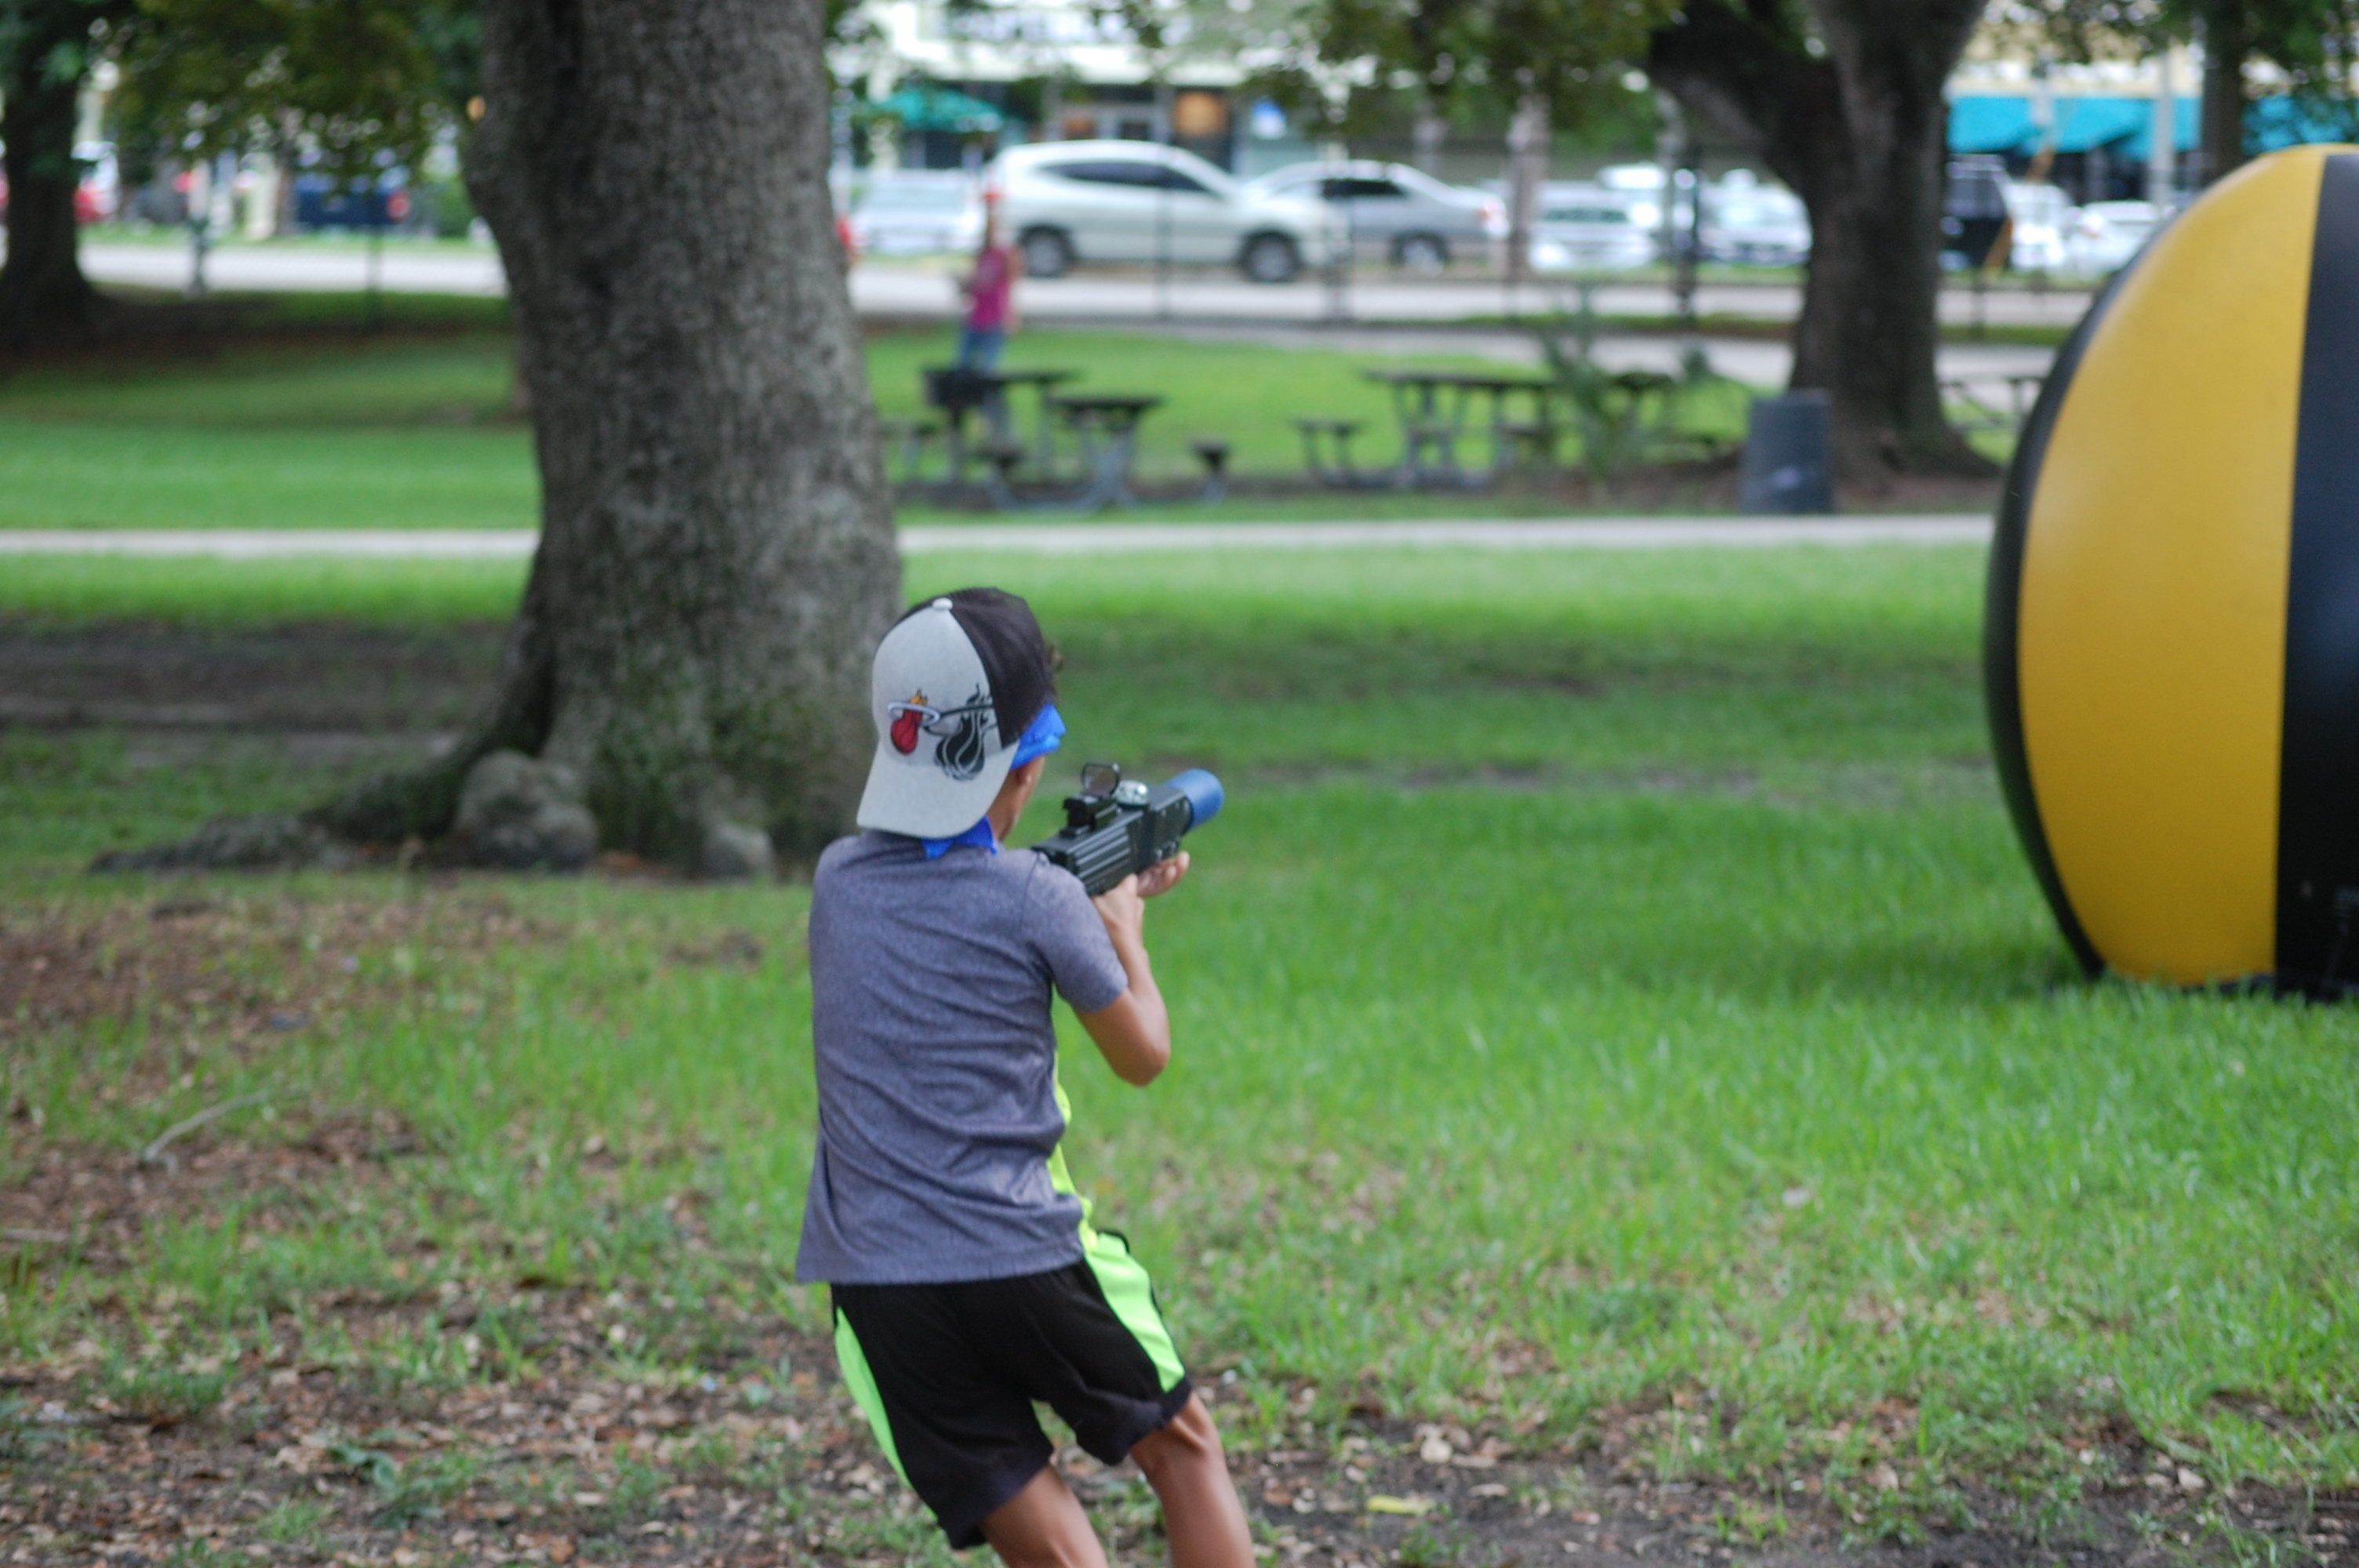 Mobile Laser Tag in Tampa, FL (6)